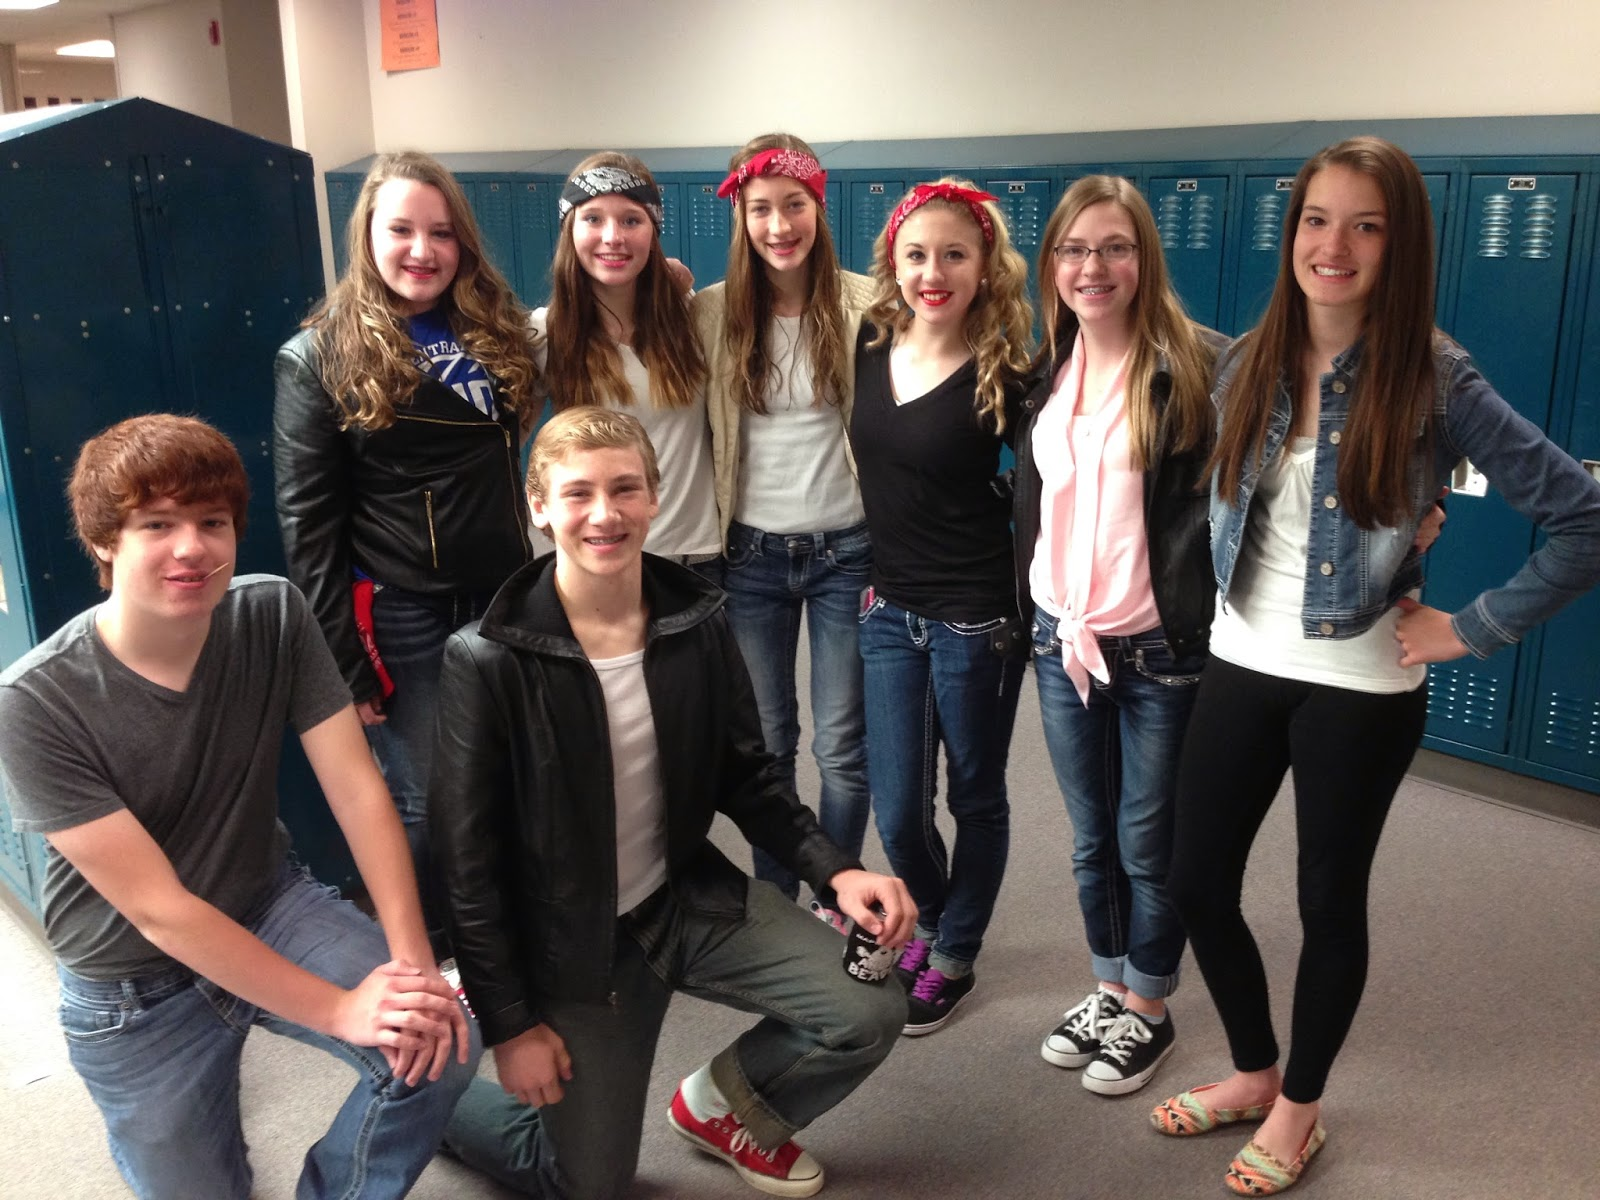 Miss Kluver's Blog: Greaser and Soc Day!